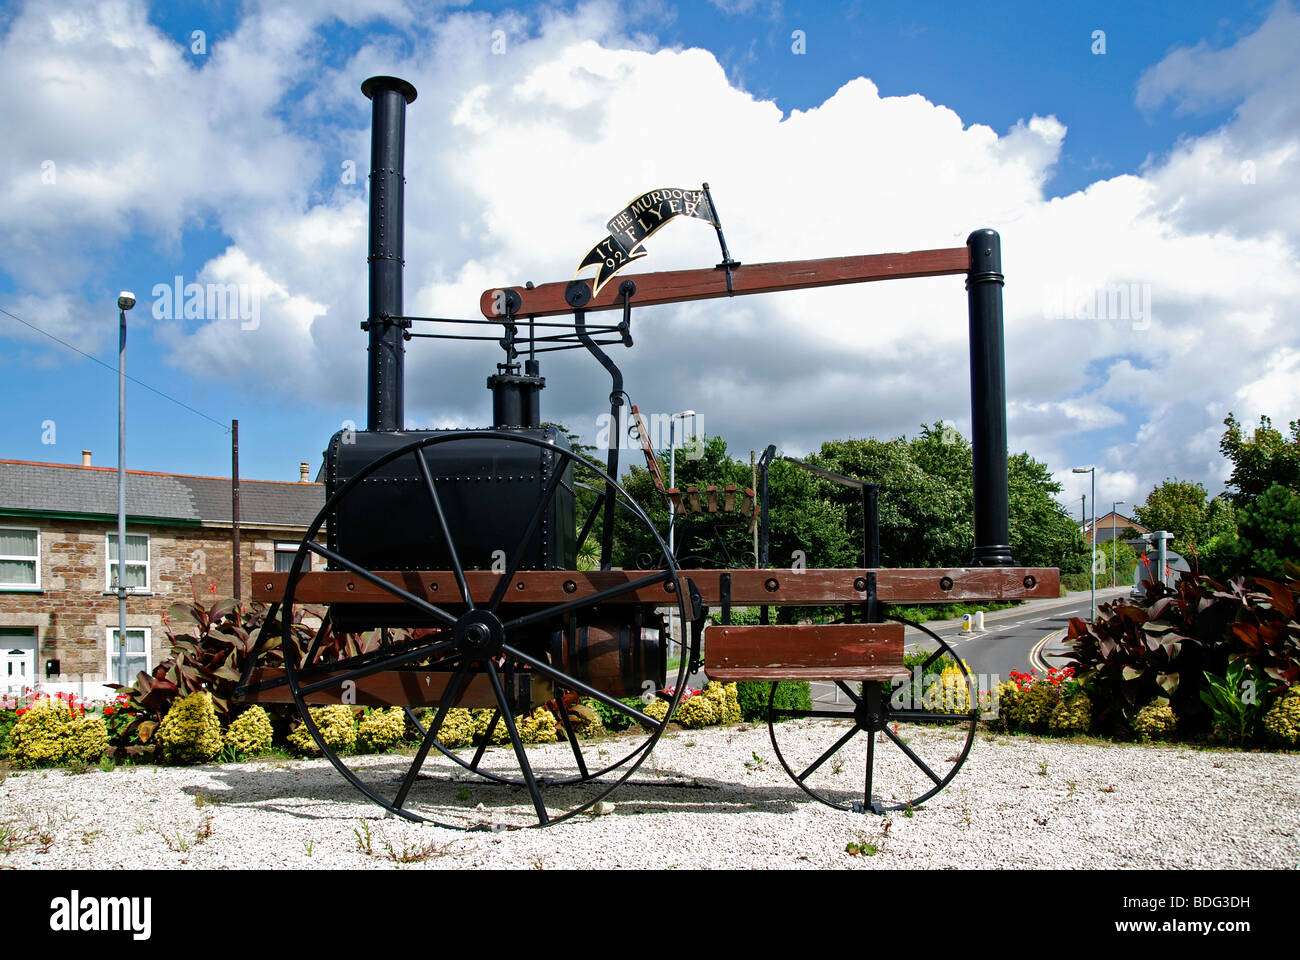 the ' murdoch flyer ' a replica of the original steam engine in redruth, cornwall, uk - Stock Image